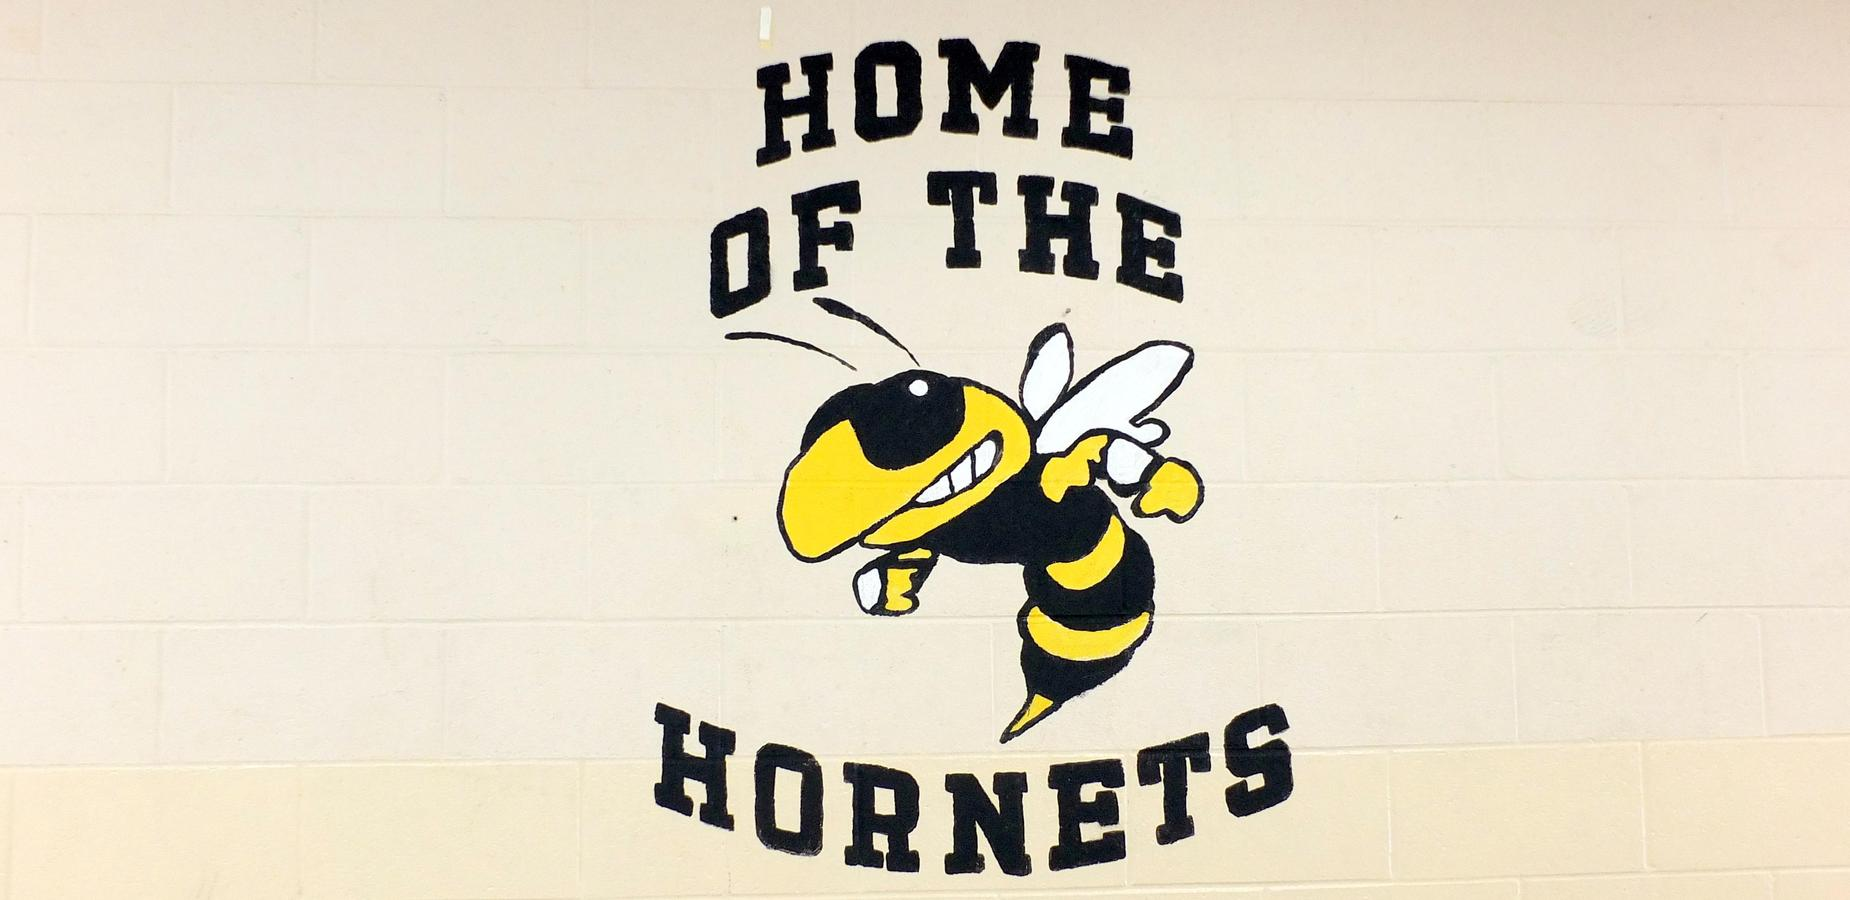 Home of the Hornets